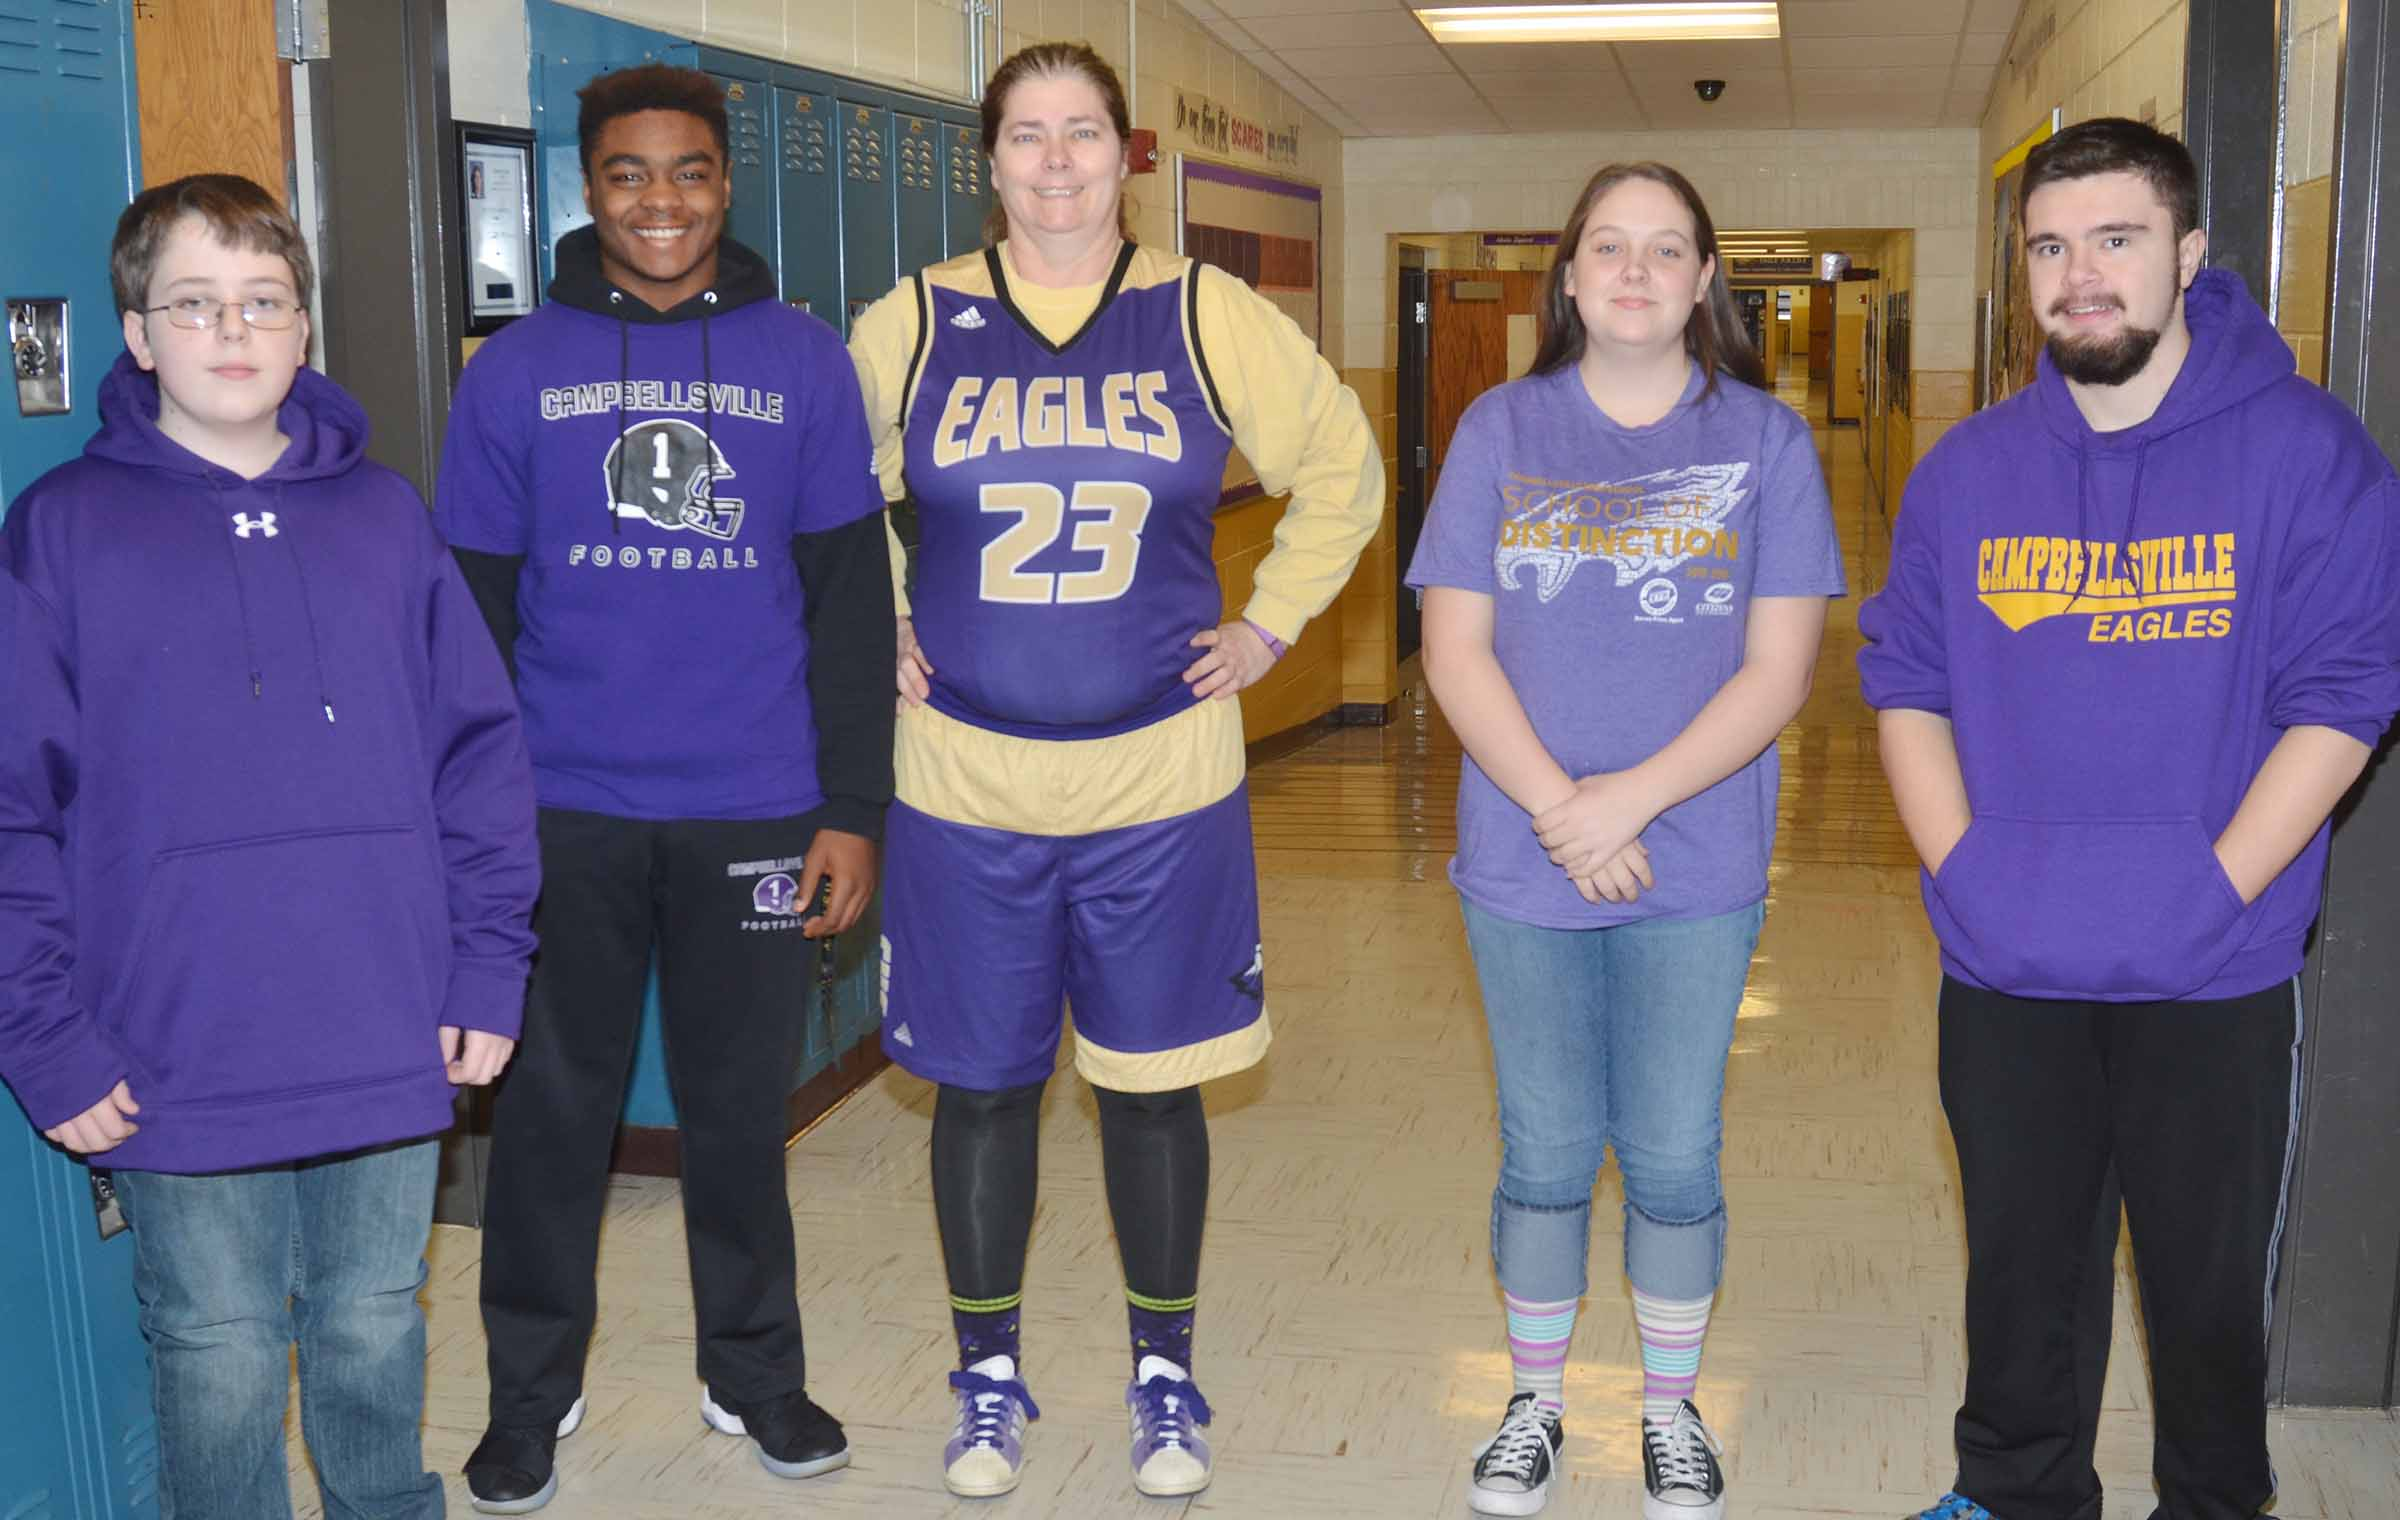 CHS students and teachers dress in purple and gold for Spirit Day.